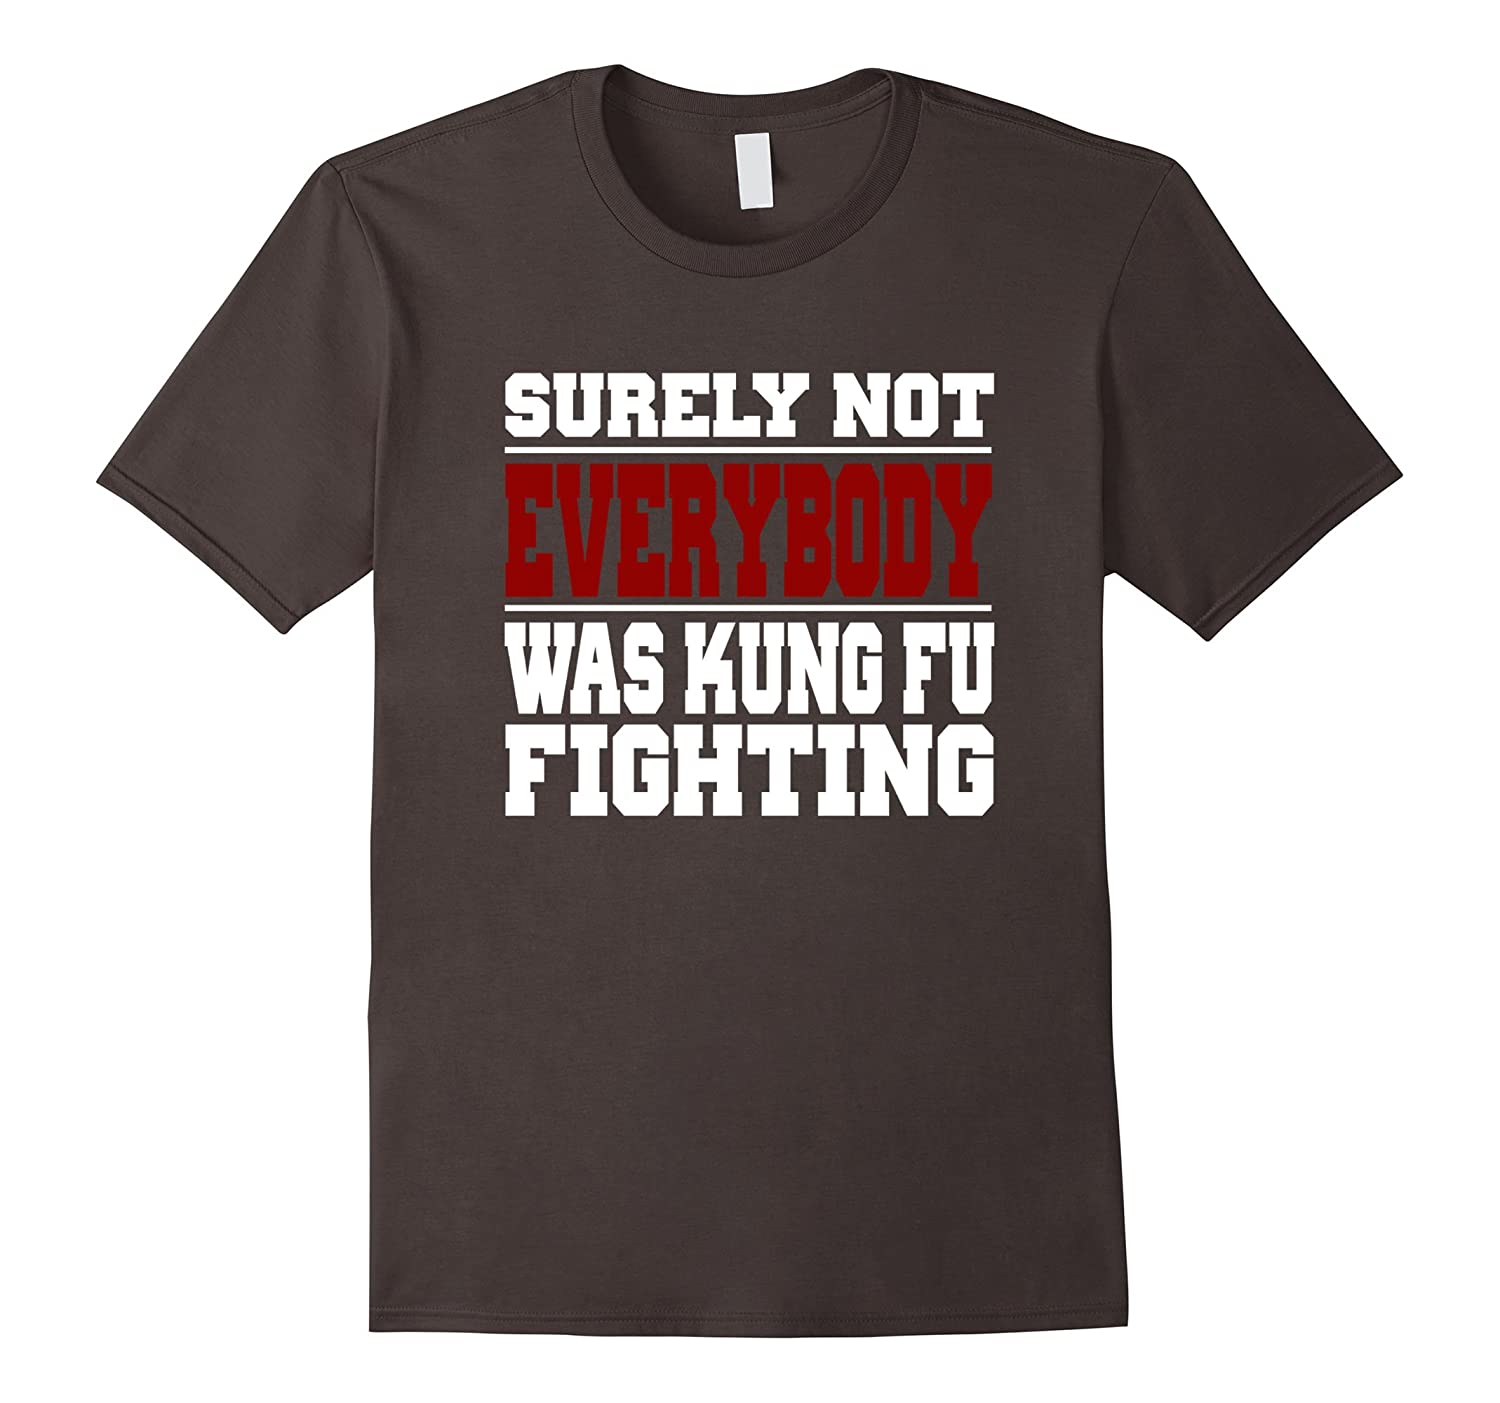 Fighting Funny T Shirt For Anyone With A Sense Of Humor-Art